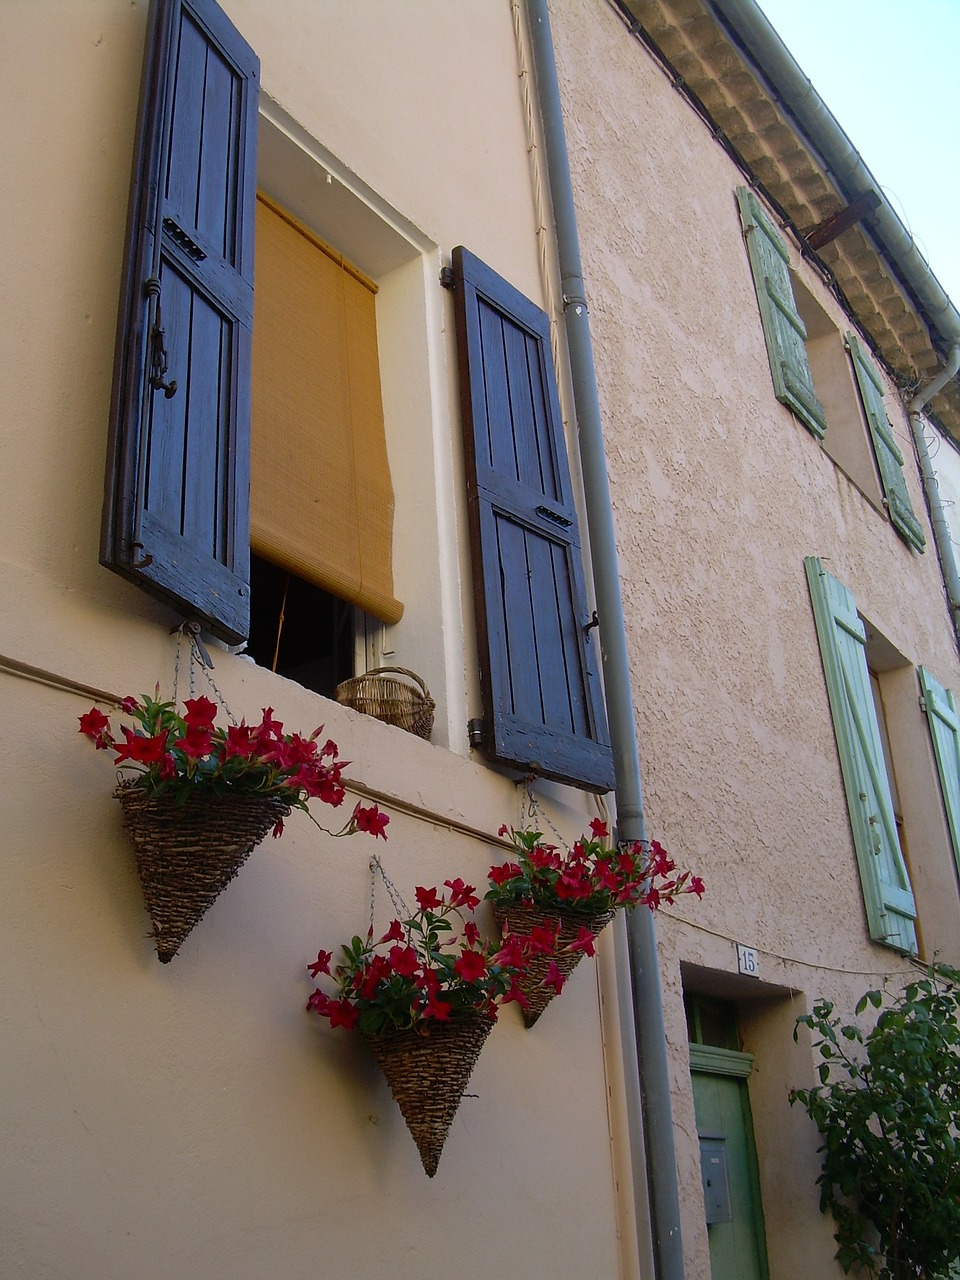 Provence Decoration Provence France Decoration Free Pictures Free Photos Free Photo